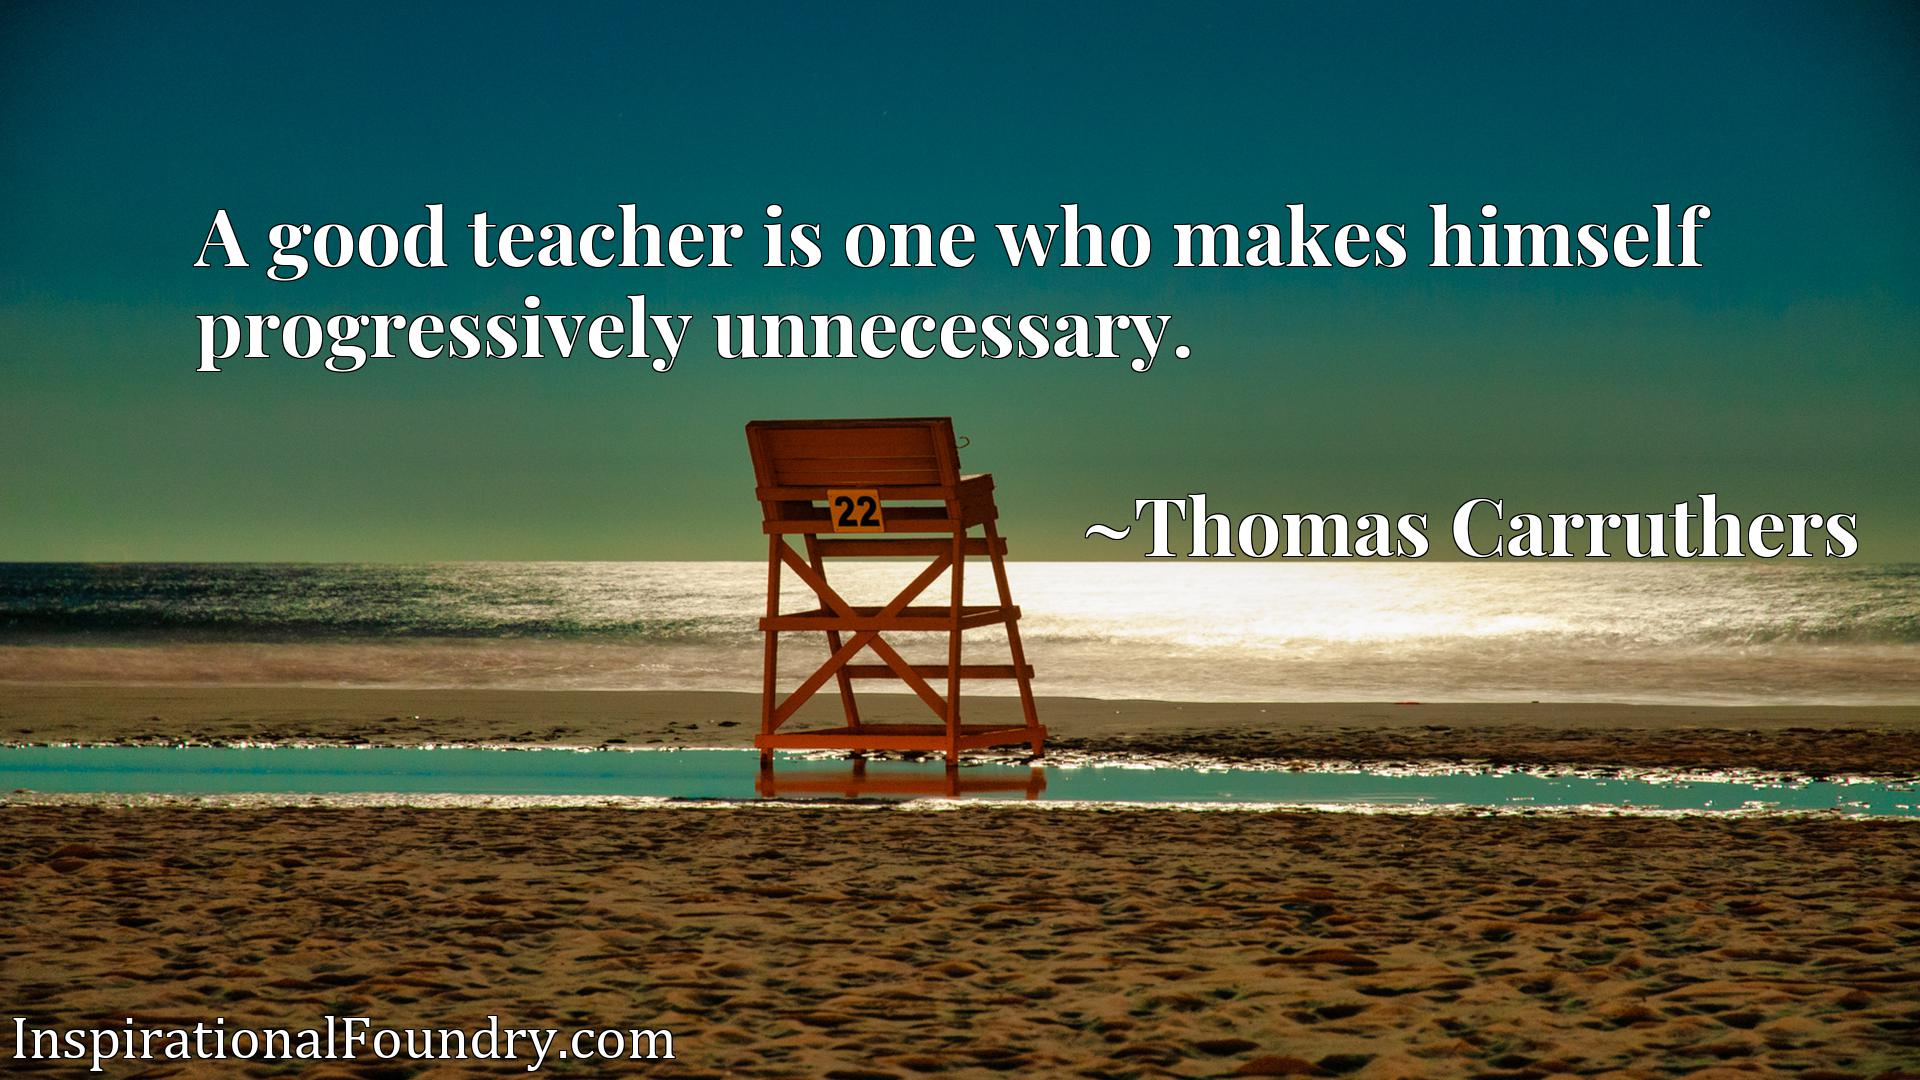 A good teacher is one who makes himself progressively unnecessary.